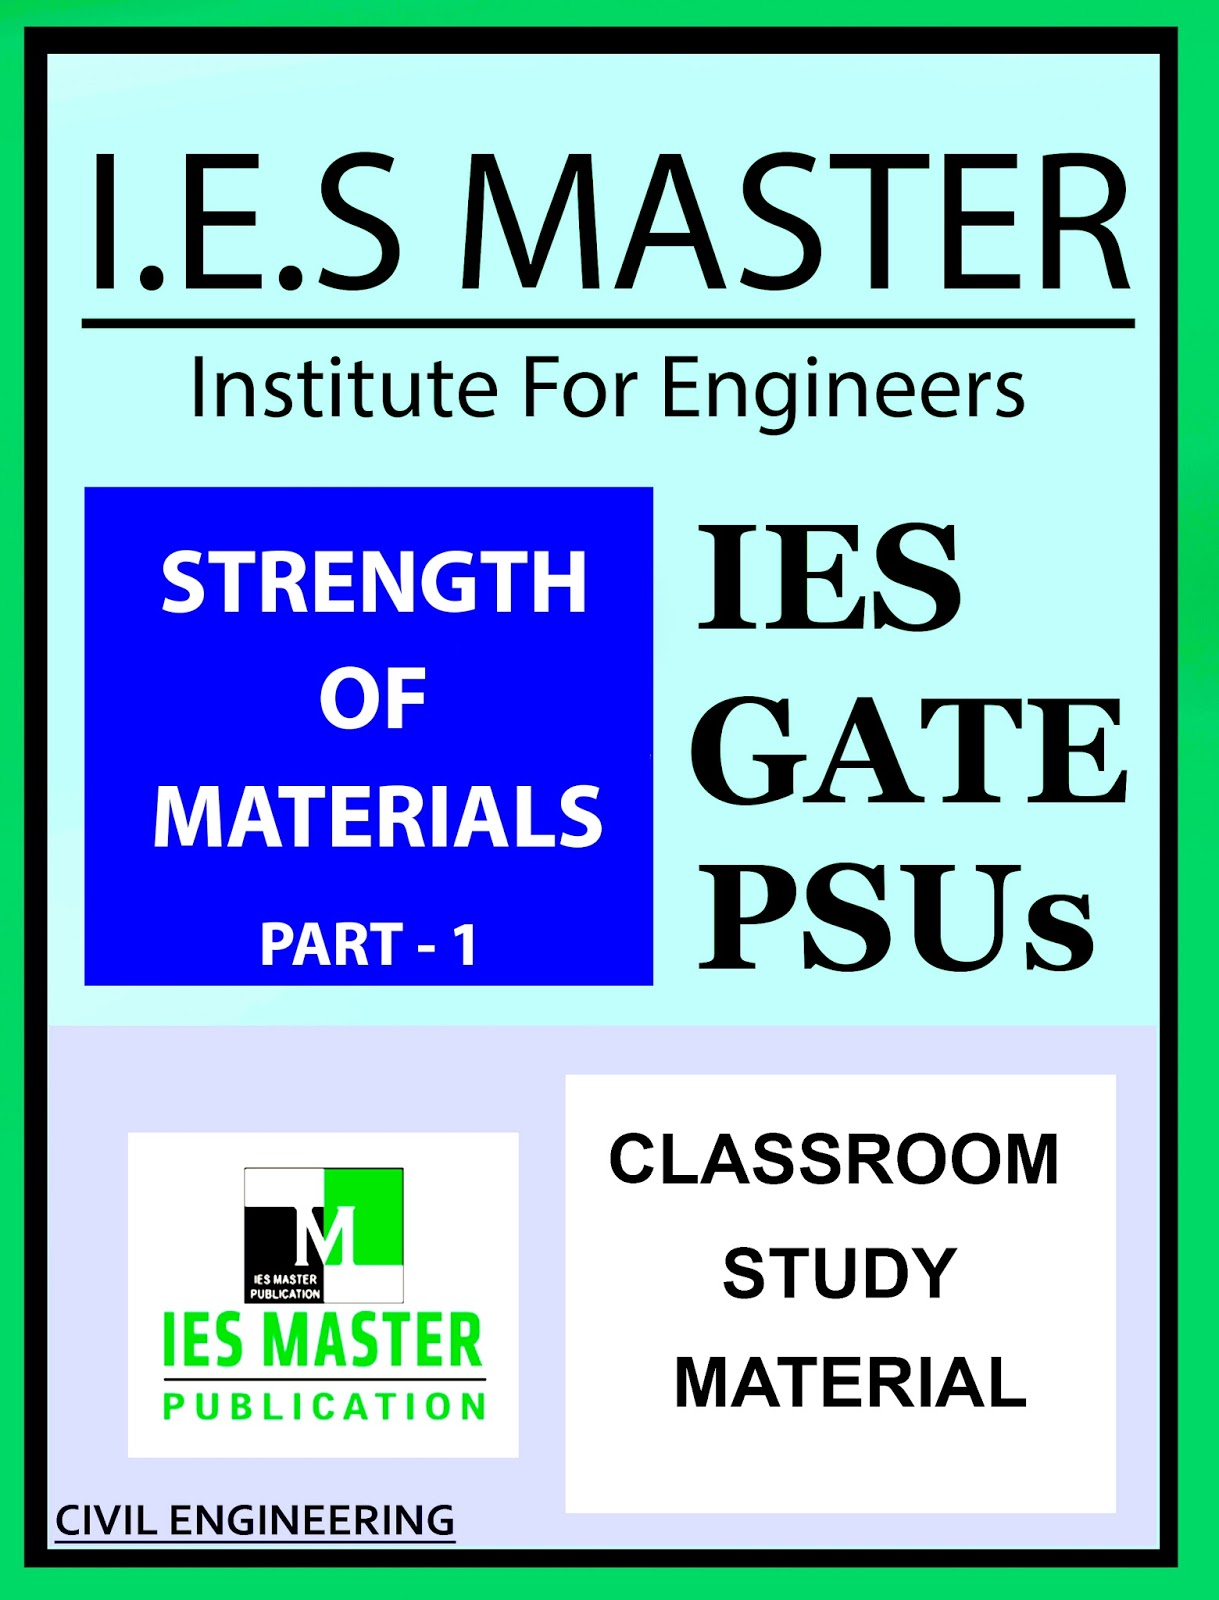 GATE MATERIAL] IES MASTER Strength of Materials Part – 1